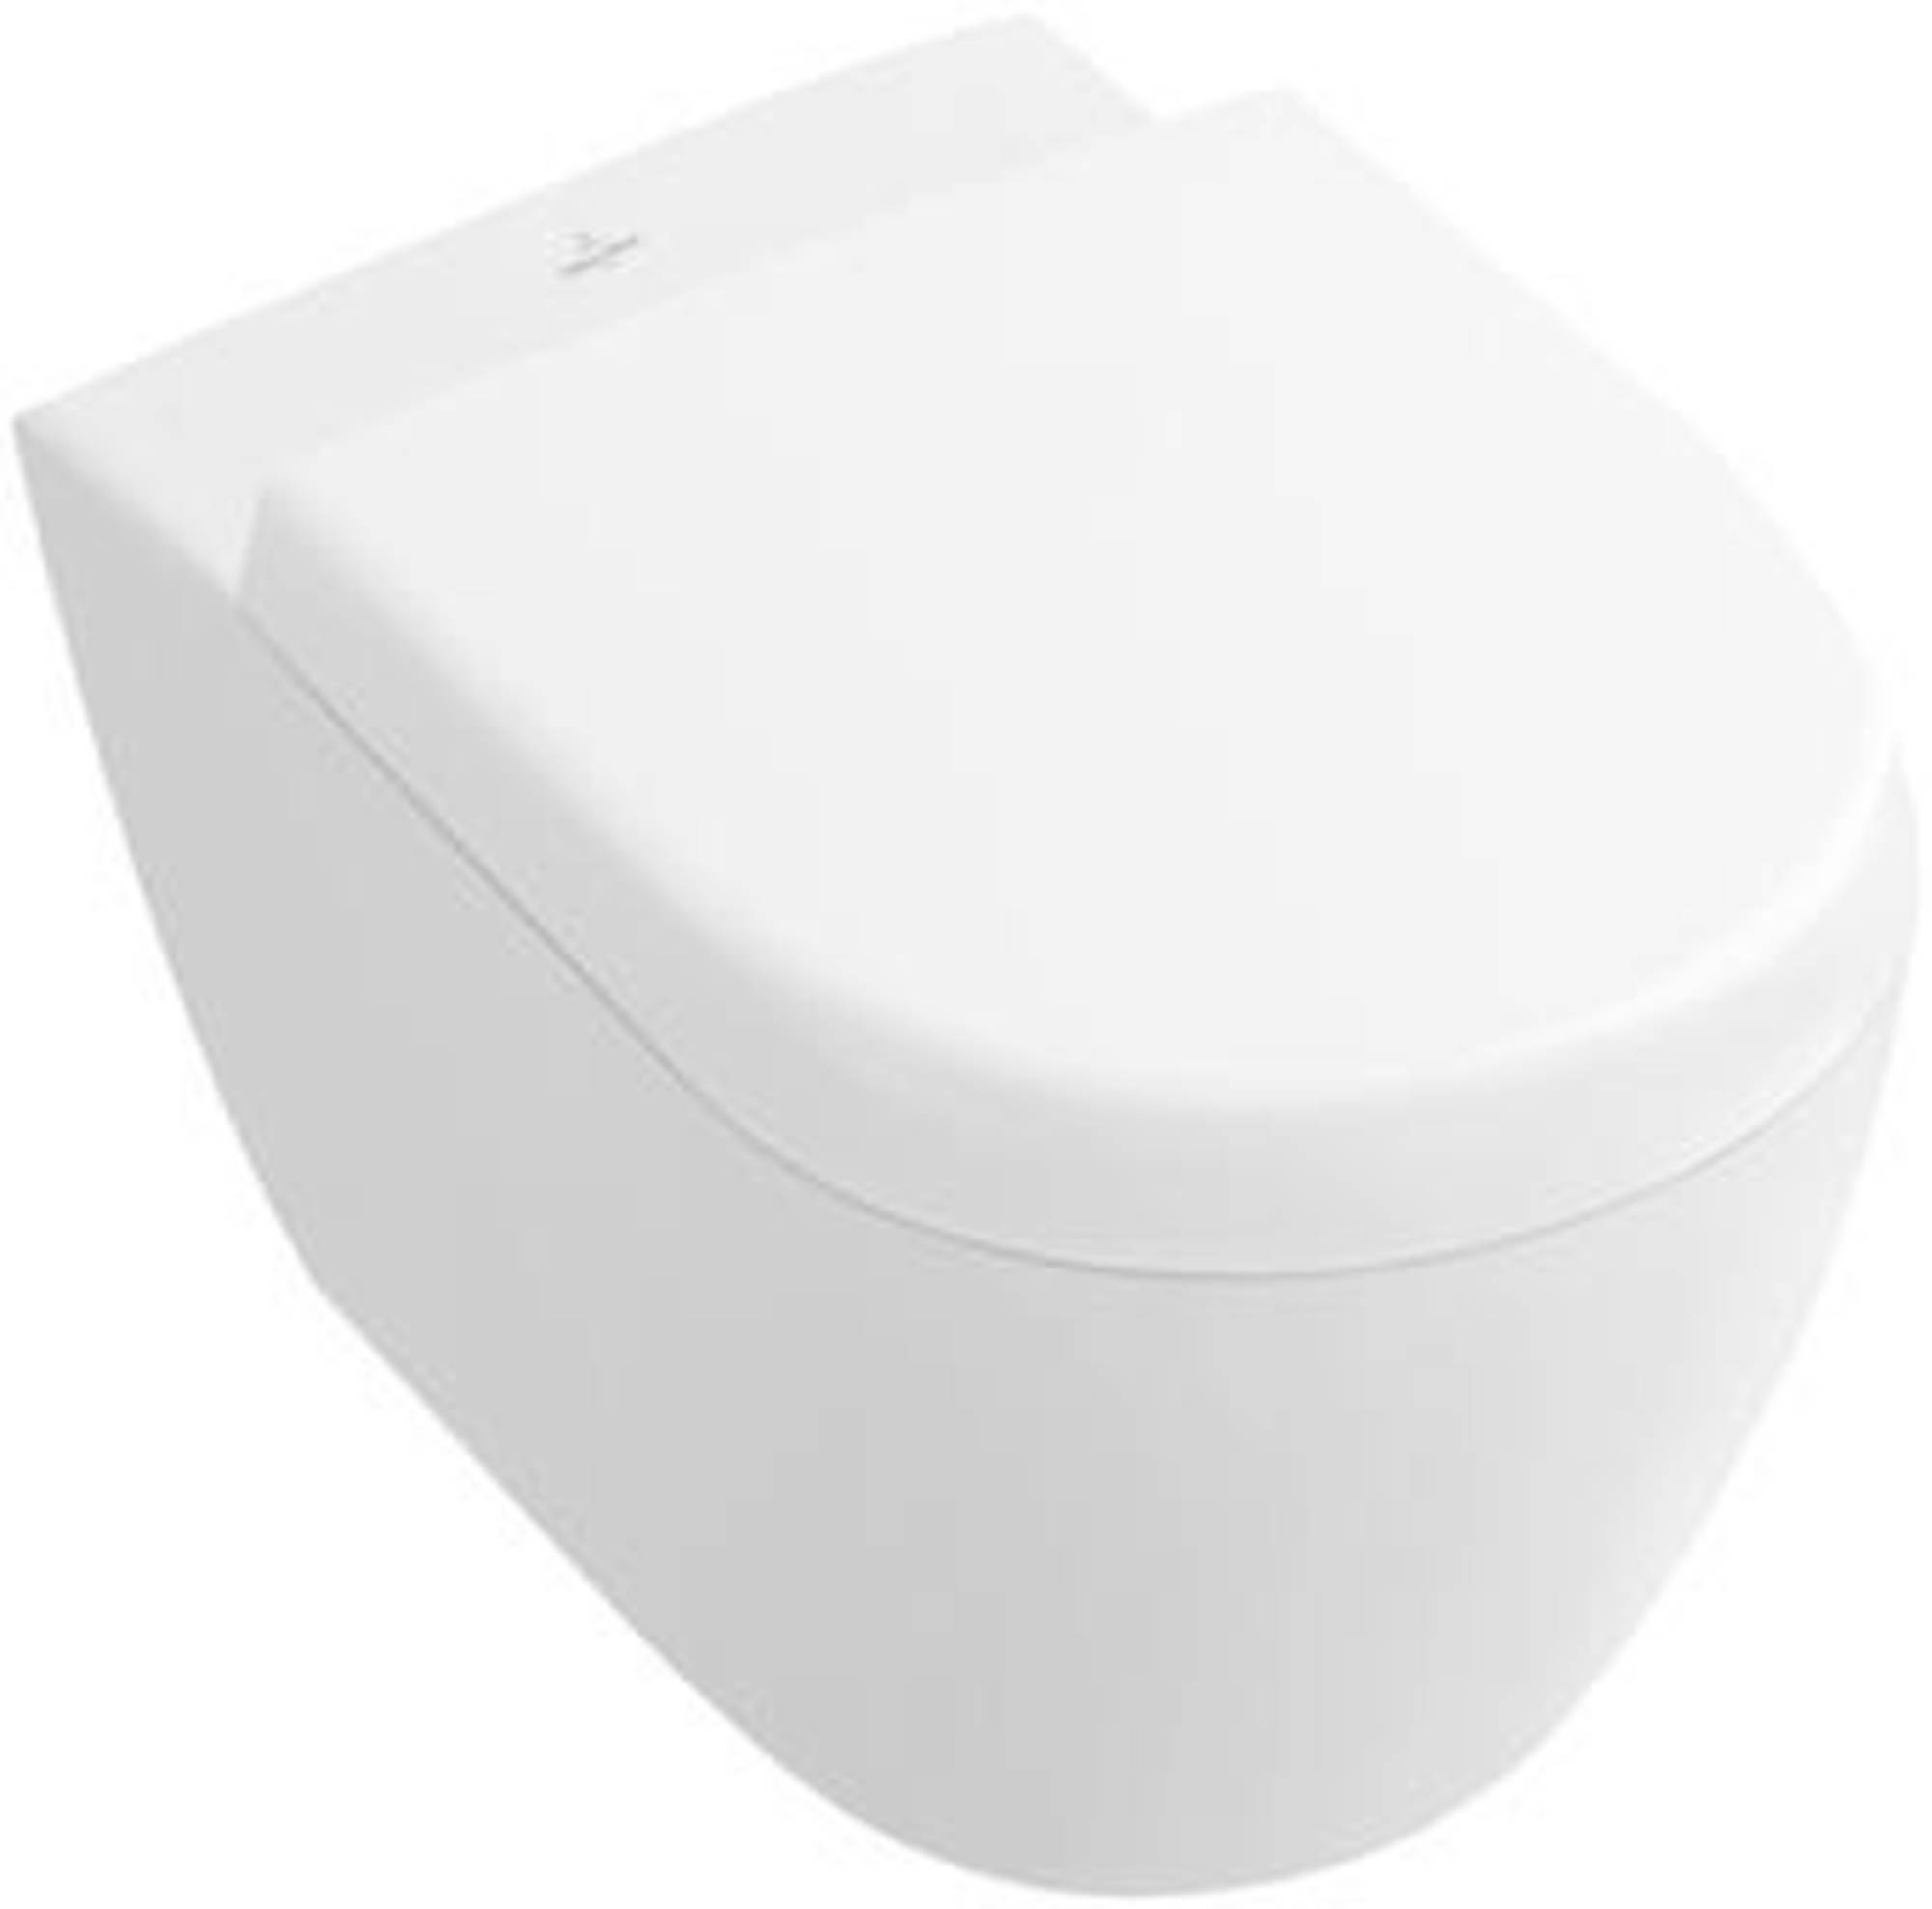 Korte Toiletpot Villeroy Boch Subway 2 Wandcloset Direct Flush Verkort Ceramicplus Wit